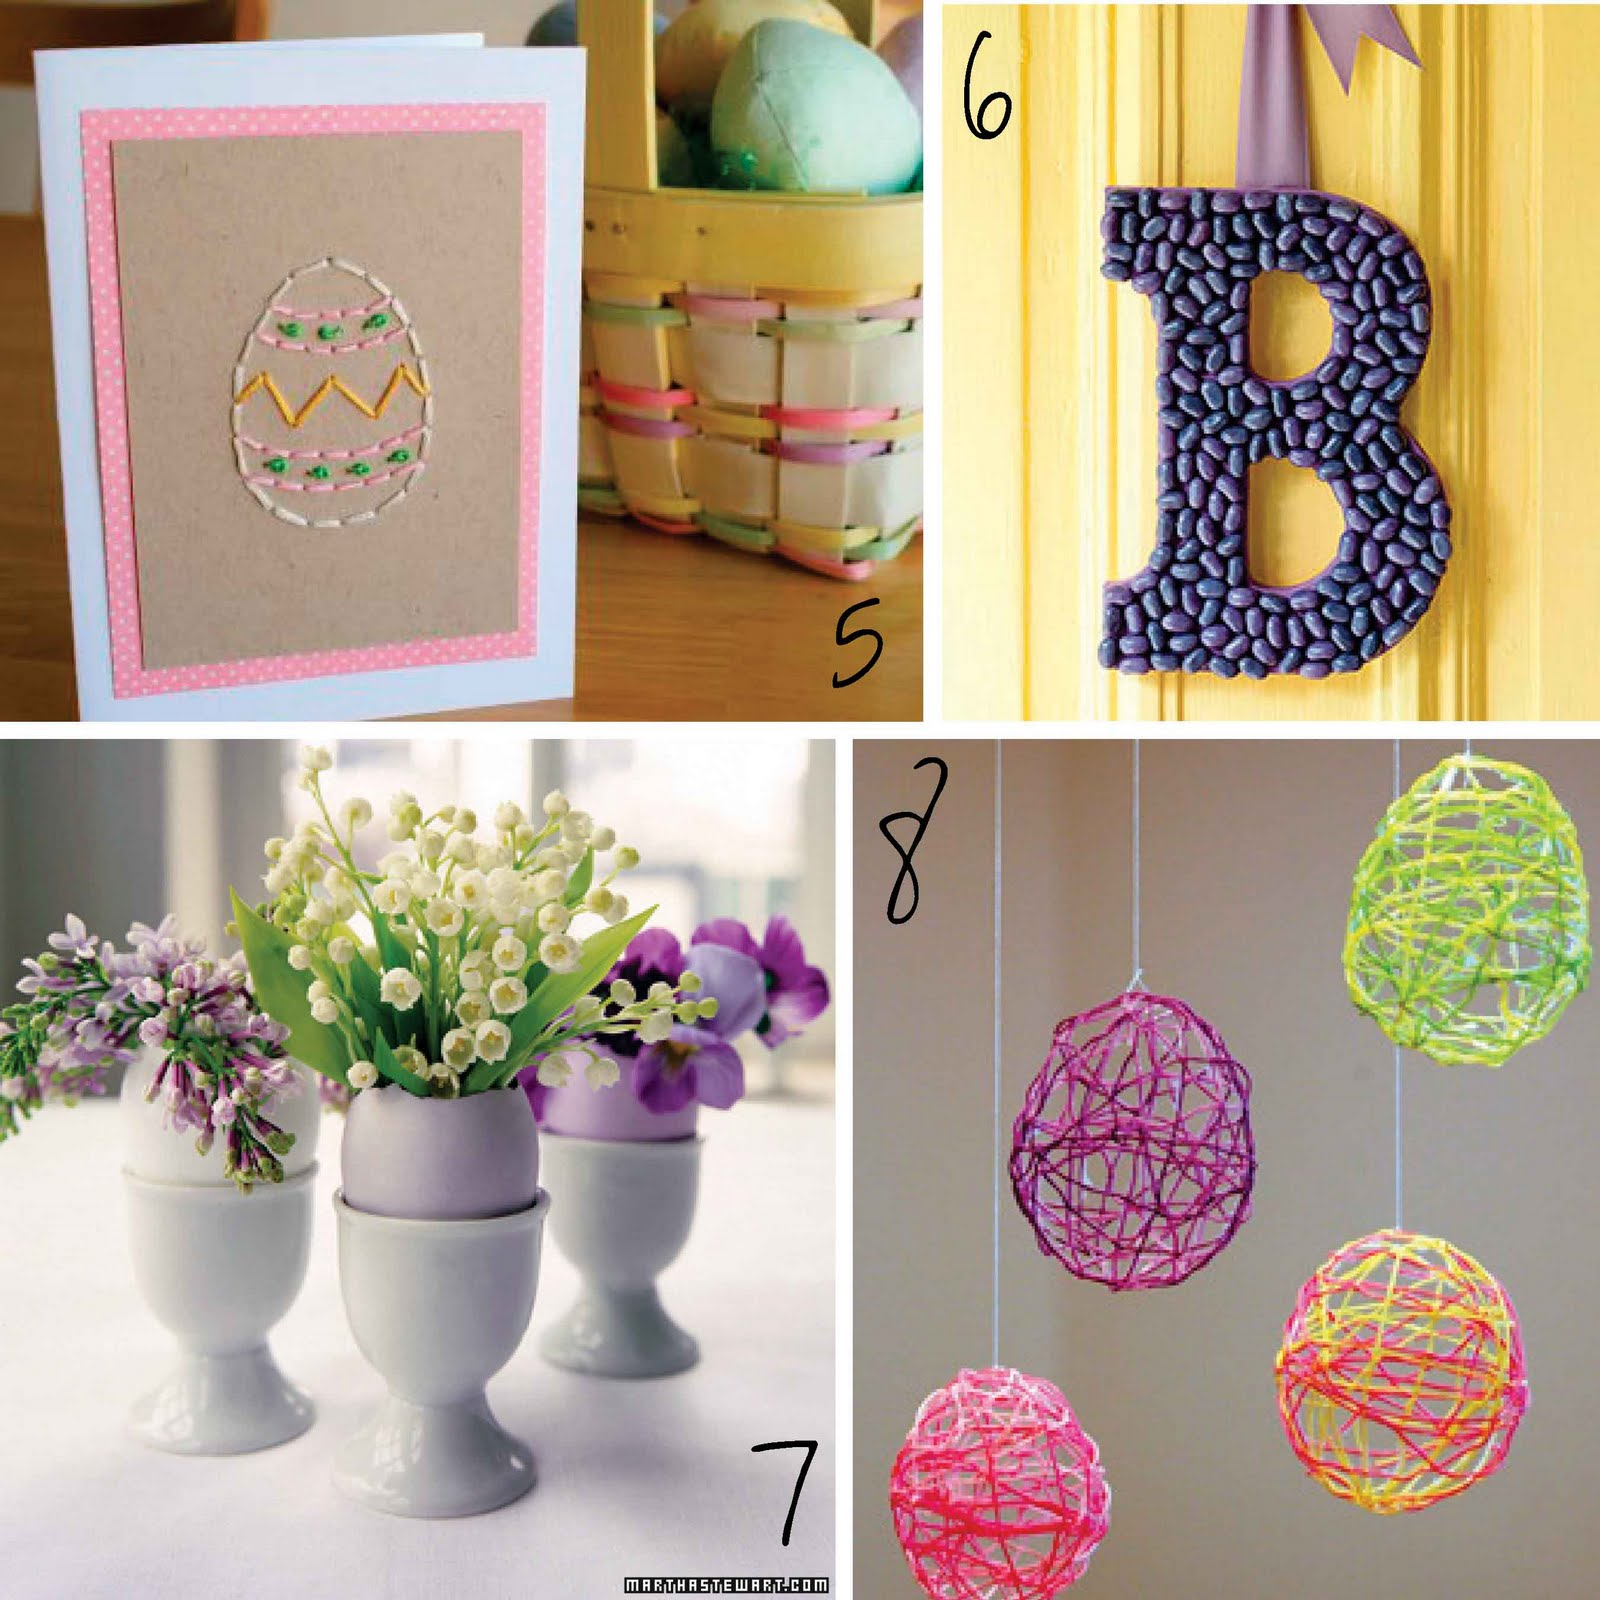 J And L Projects: Martha Stewart Easter Crafts